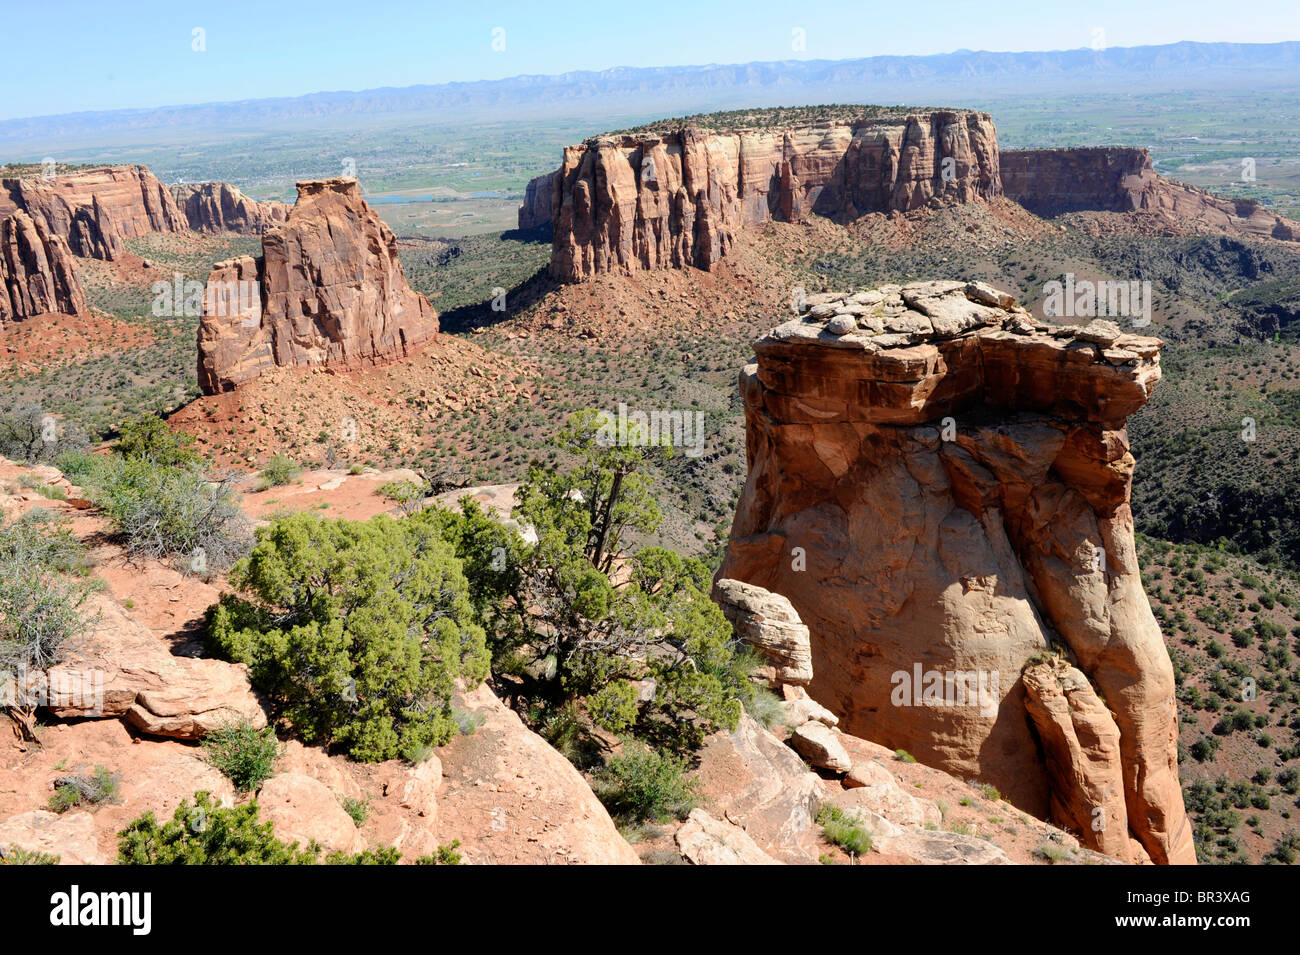 View of Balanced Rock Grandview Point Colorado National Monument Grand Junction  - Stock Image